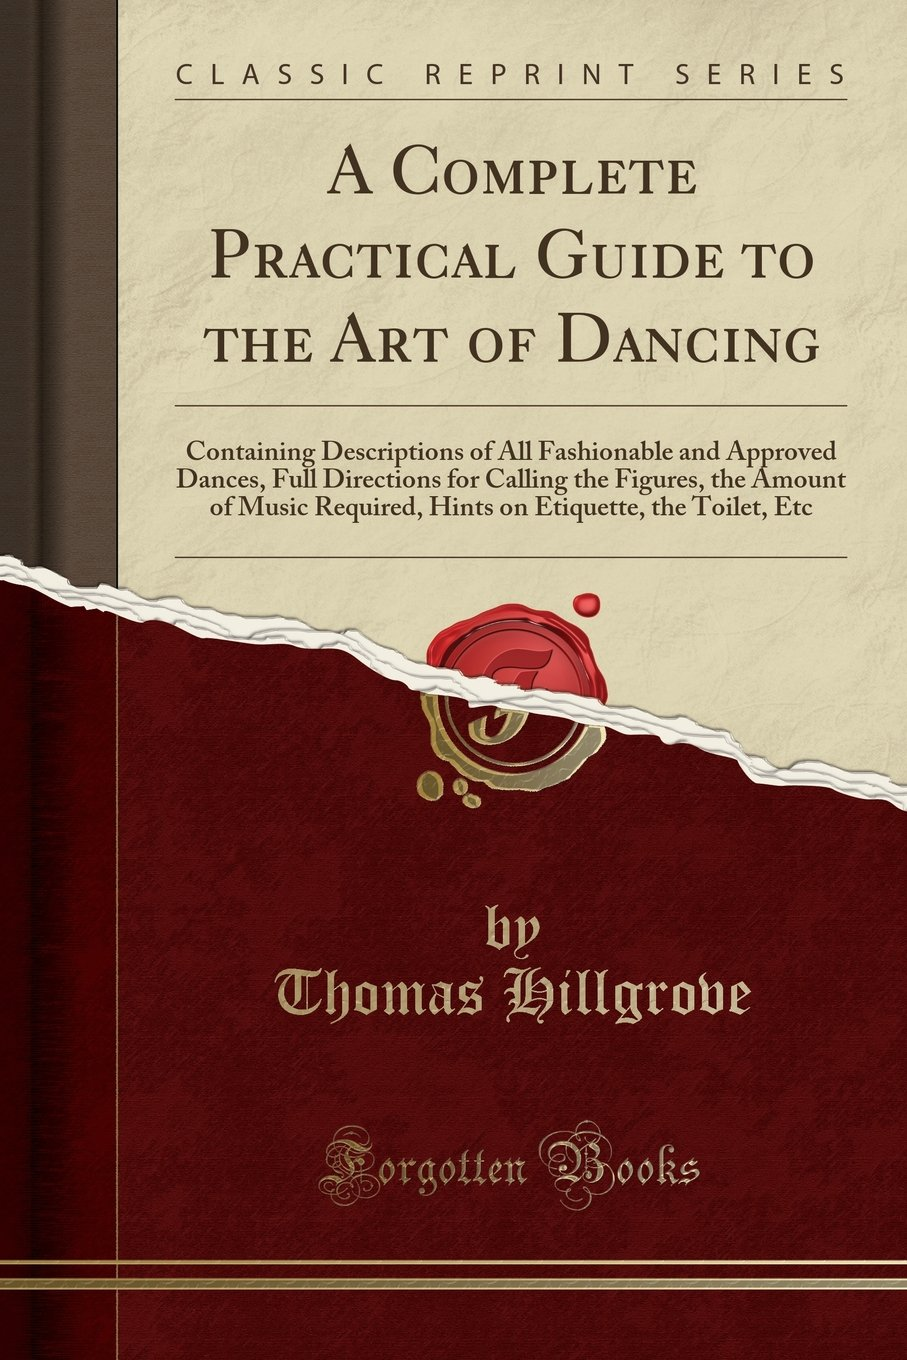 A Complete Practical Guide to the Art of Dancing: Containing Descriptions of All Fashionable and Approved Dances, Full Directions for Calling the ... Etiquette, the Toilet, Etc (Classic Reprint) PDF